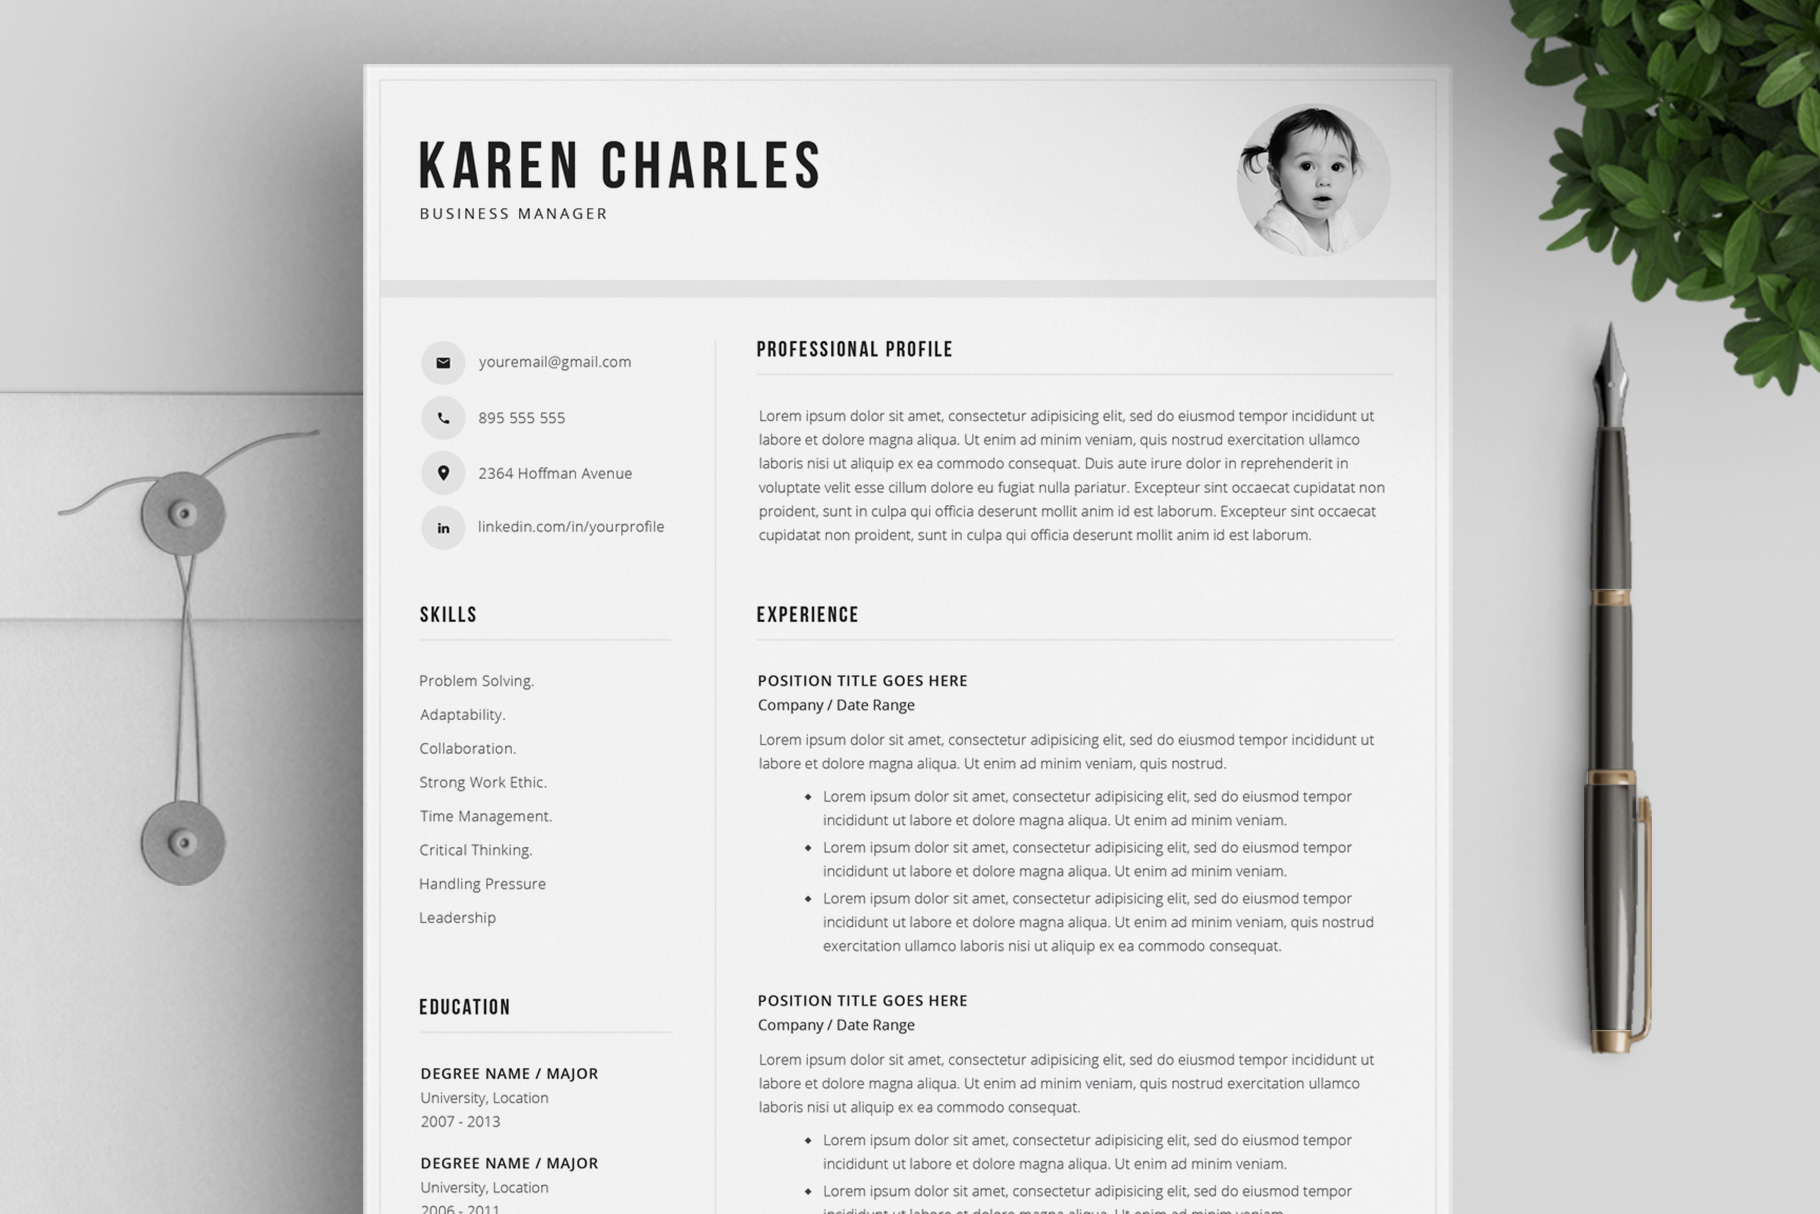 Resume Template and Cover Letter / 4 Pages example image 1